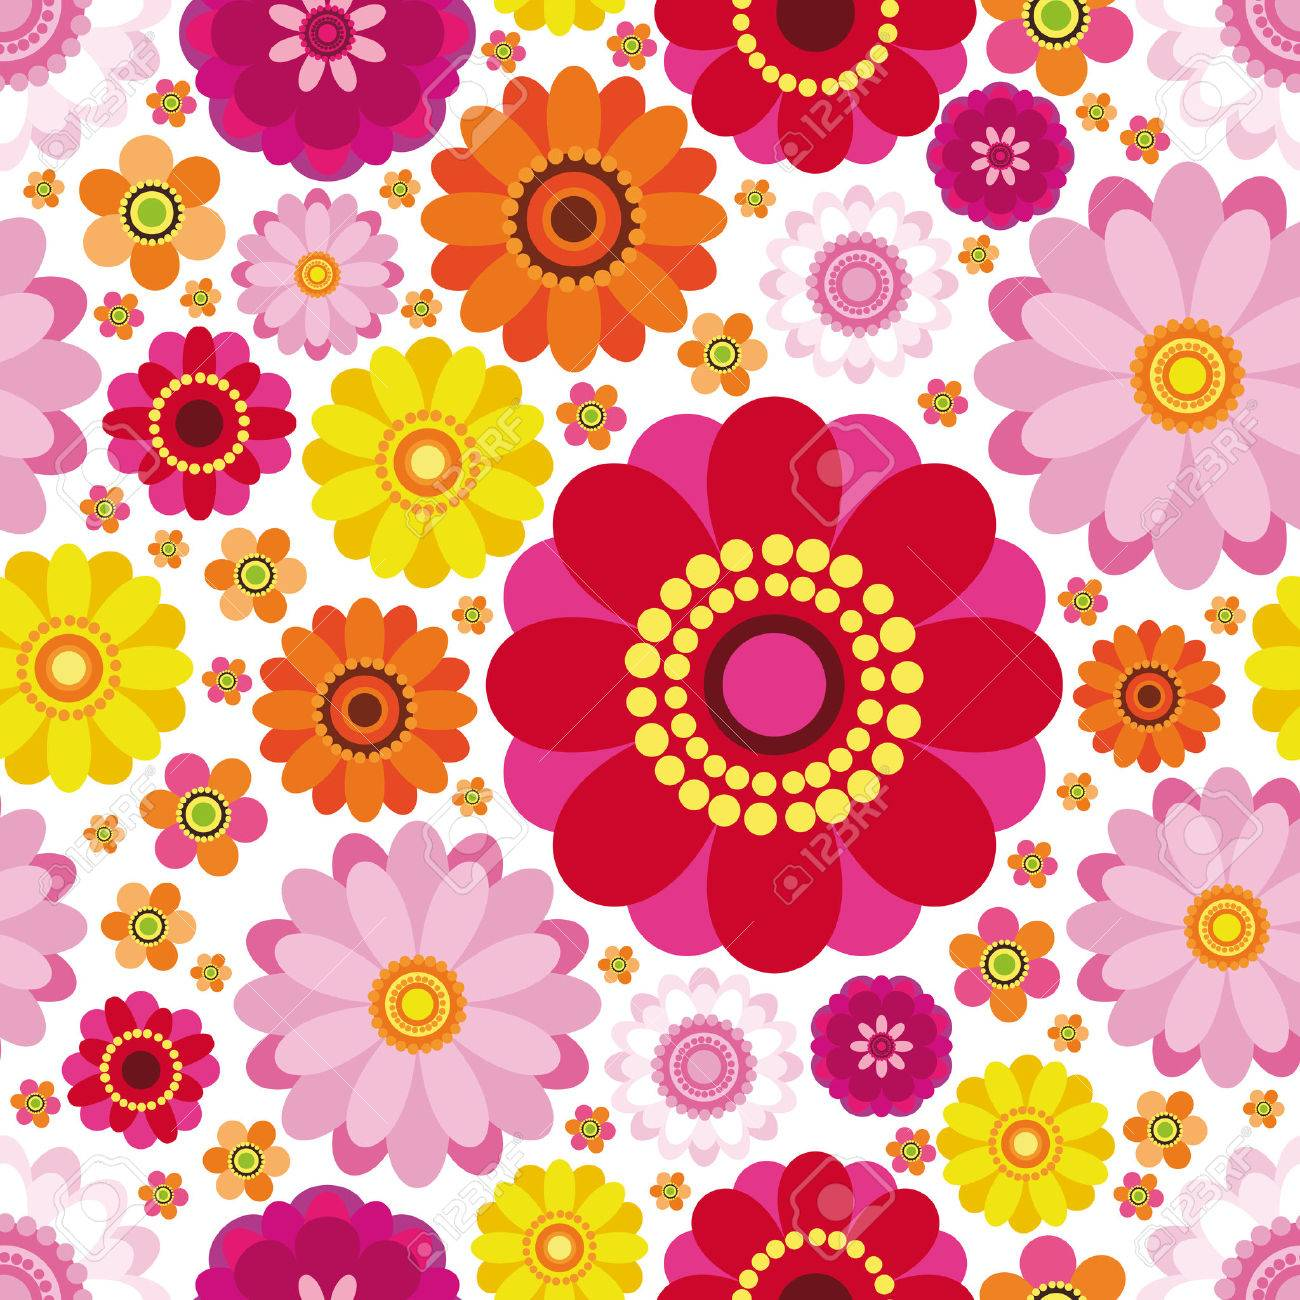 Easter floral background - an illustration for your design project. Stock Vector - 6658071